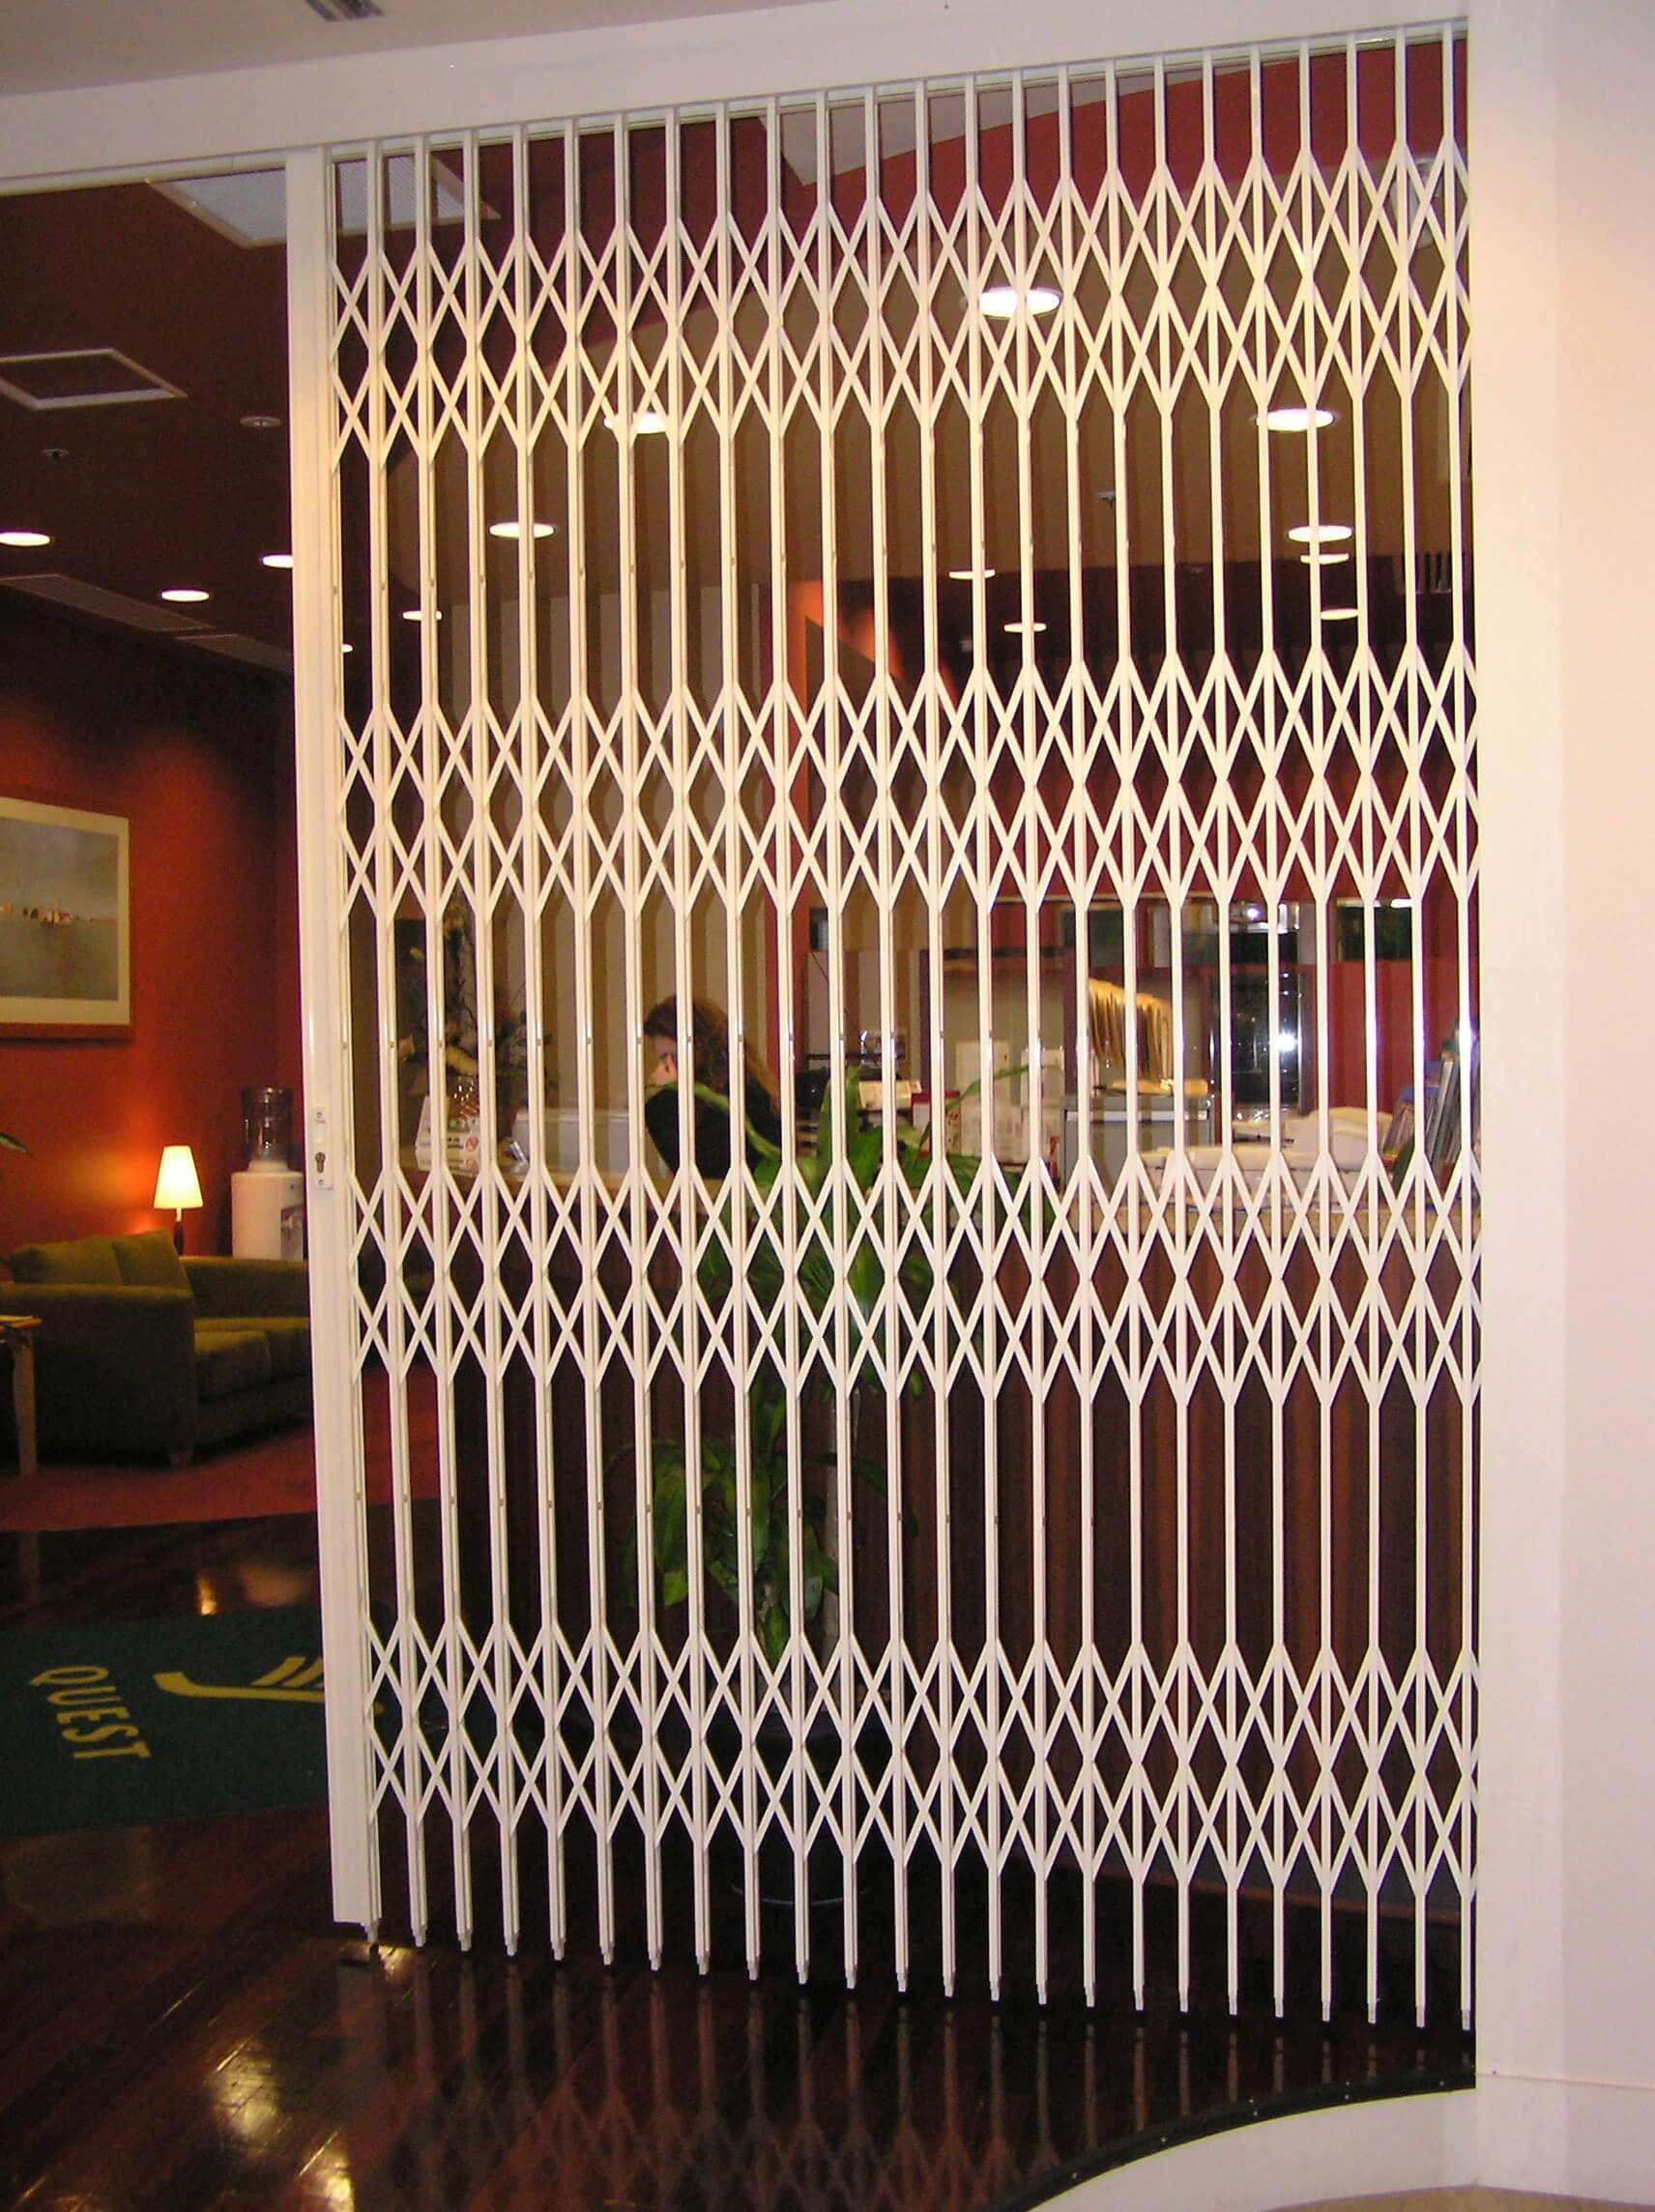 concertina door perth concertina door newcastle concertina door melbourne ... & Concertina Door - S05-1™ Heavy Duty Security Door | The Australian ...